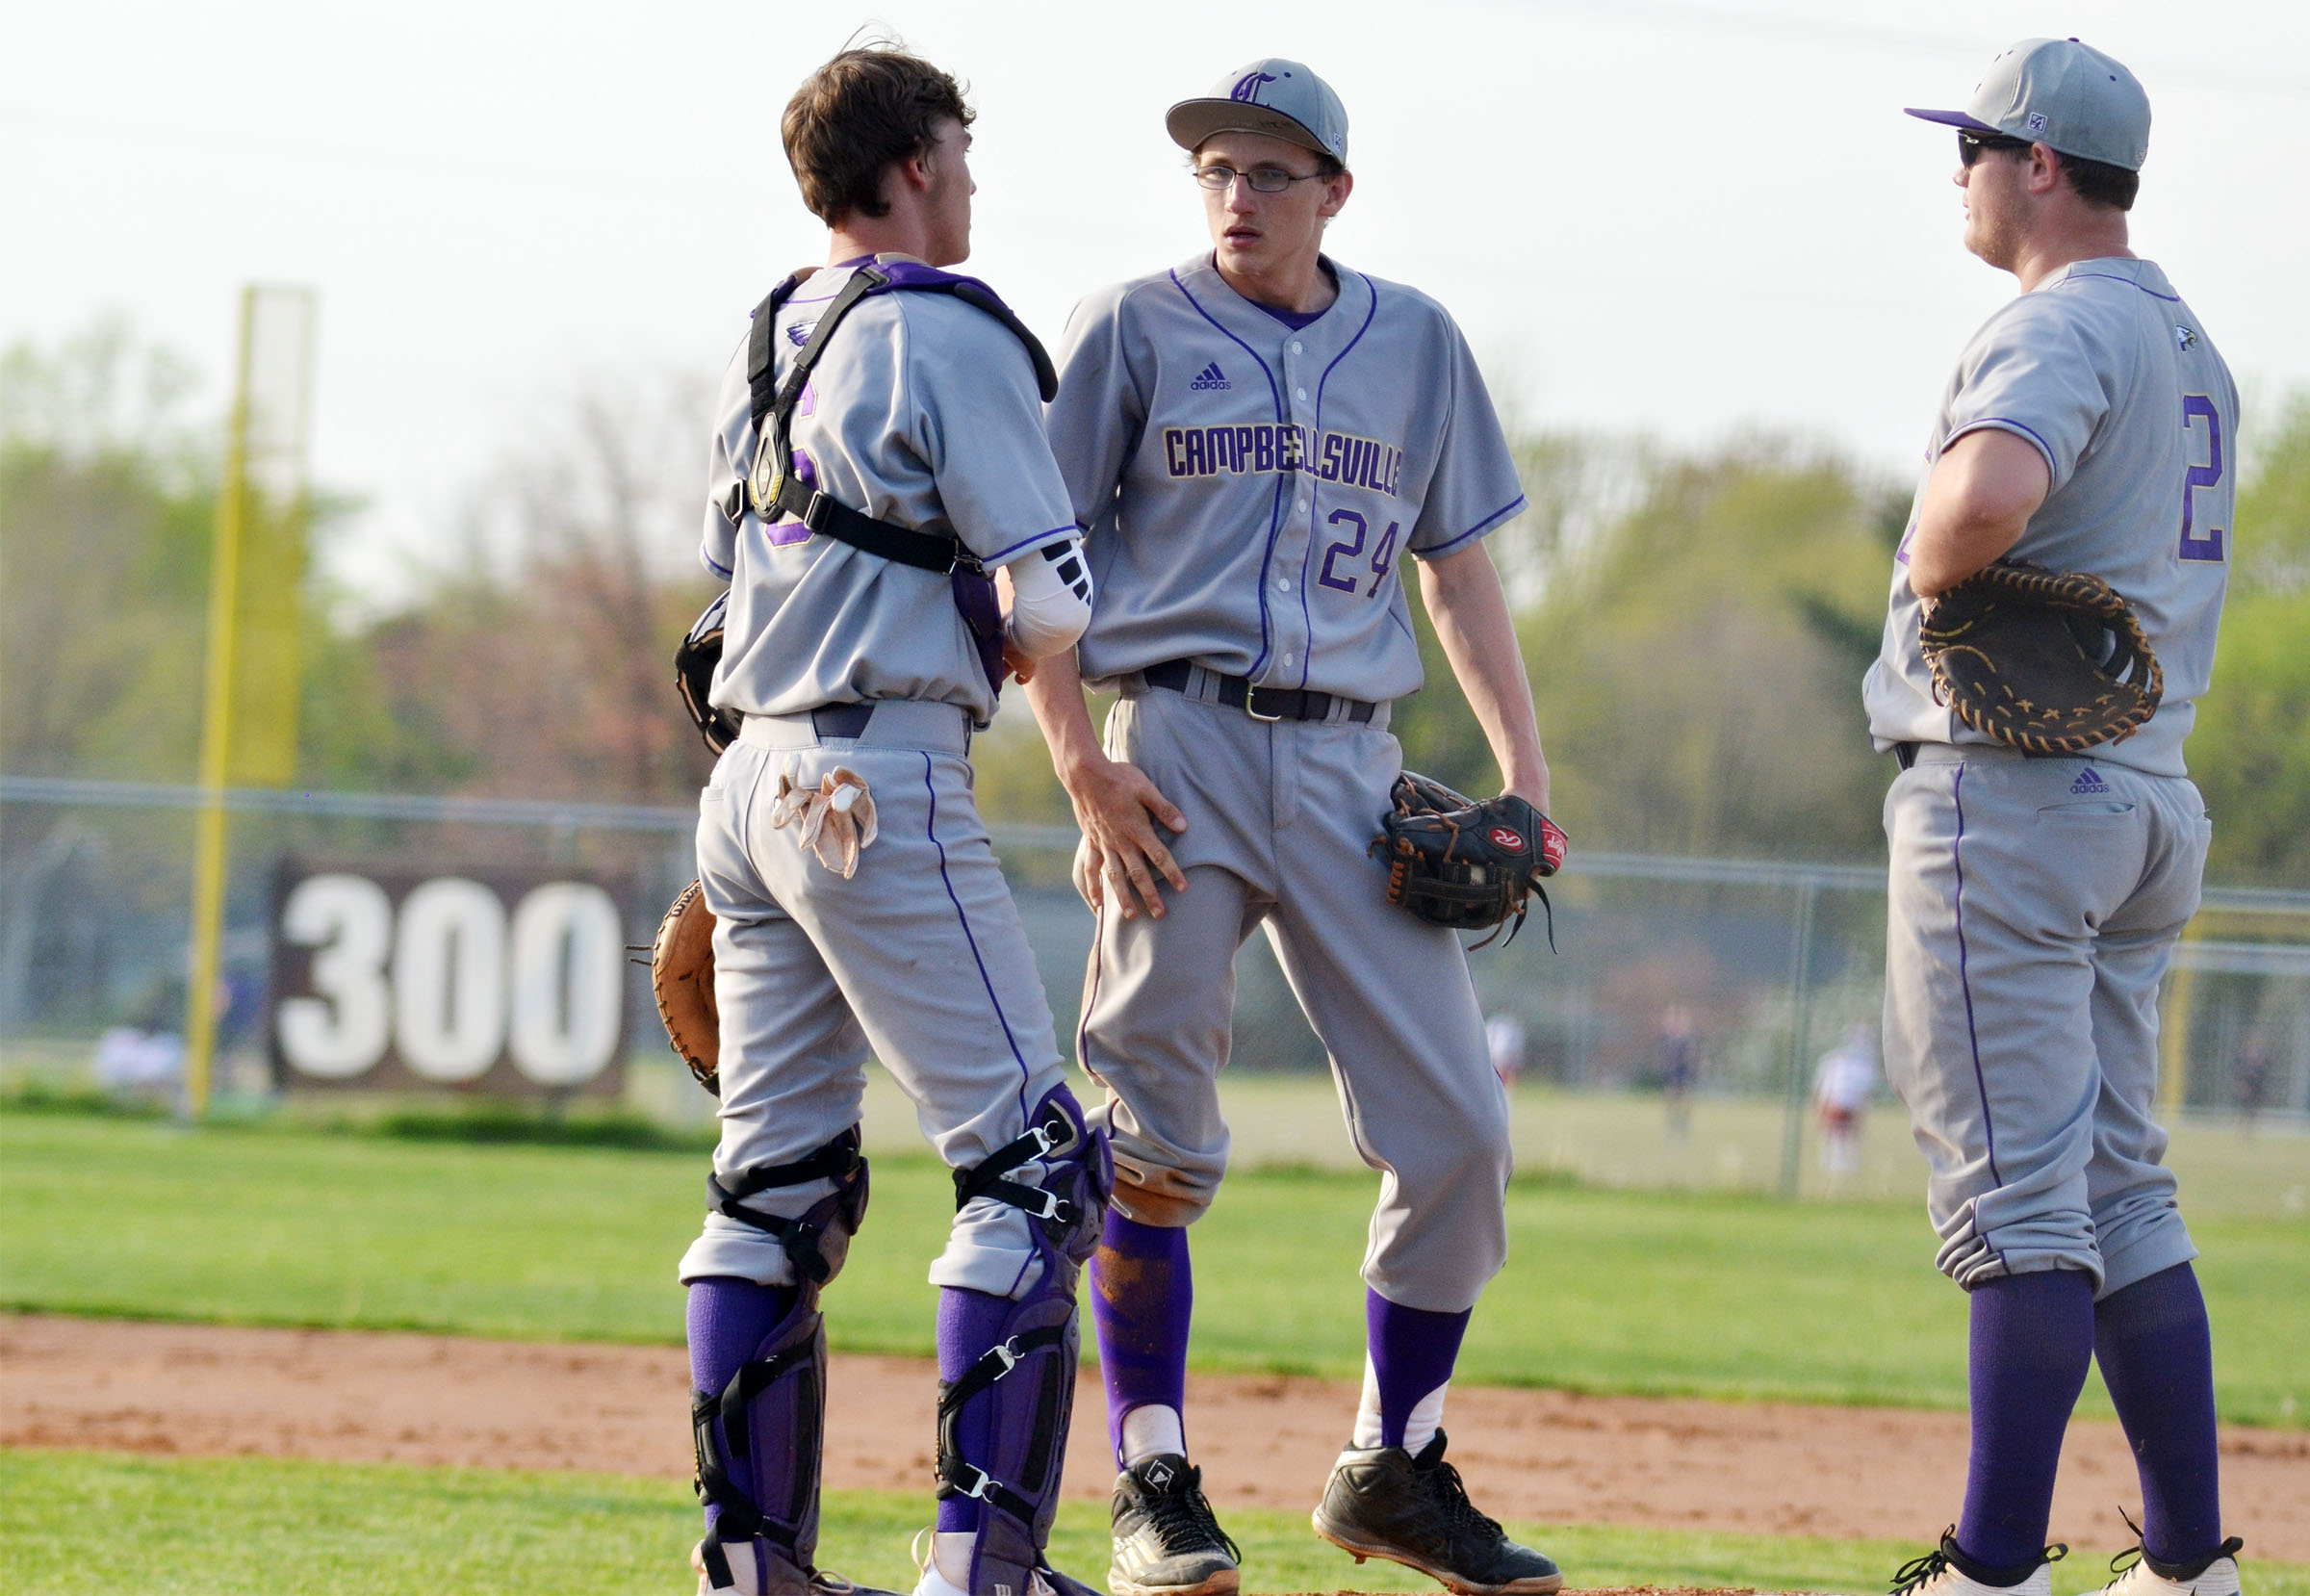 CHS senior Zack Bottoms, at left, talks to freshman Brennon Wheeler and sophomore Lane Bottoms during an inning.